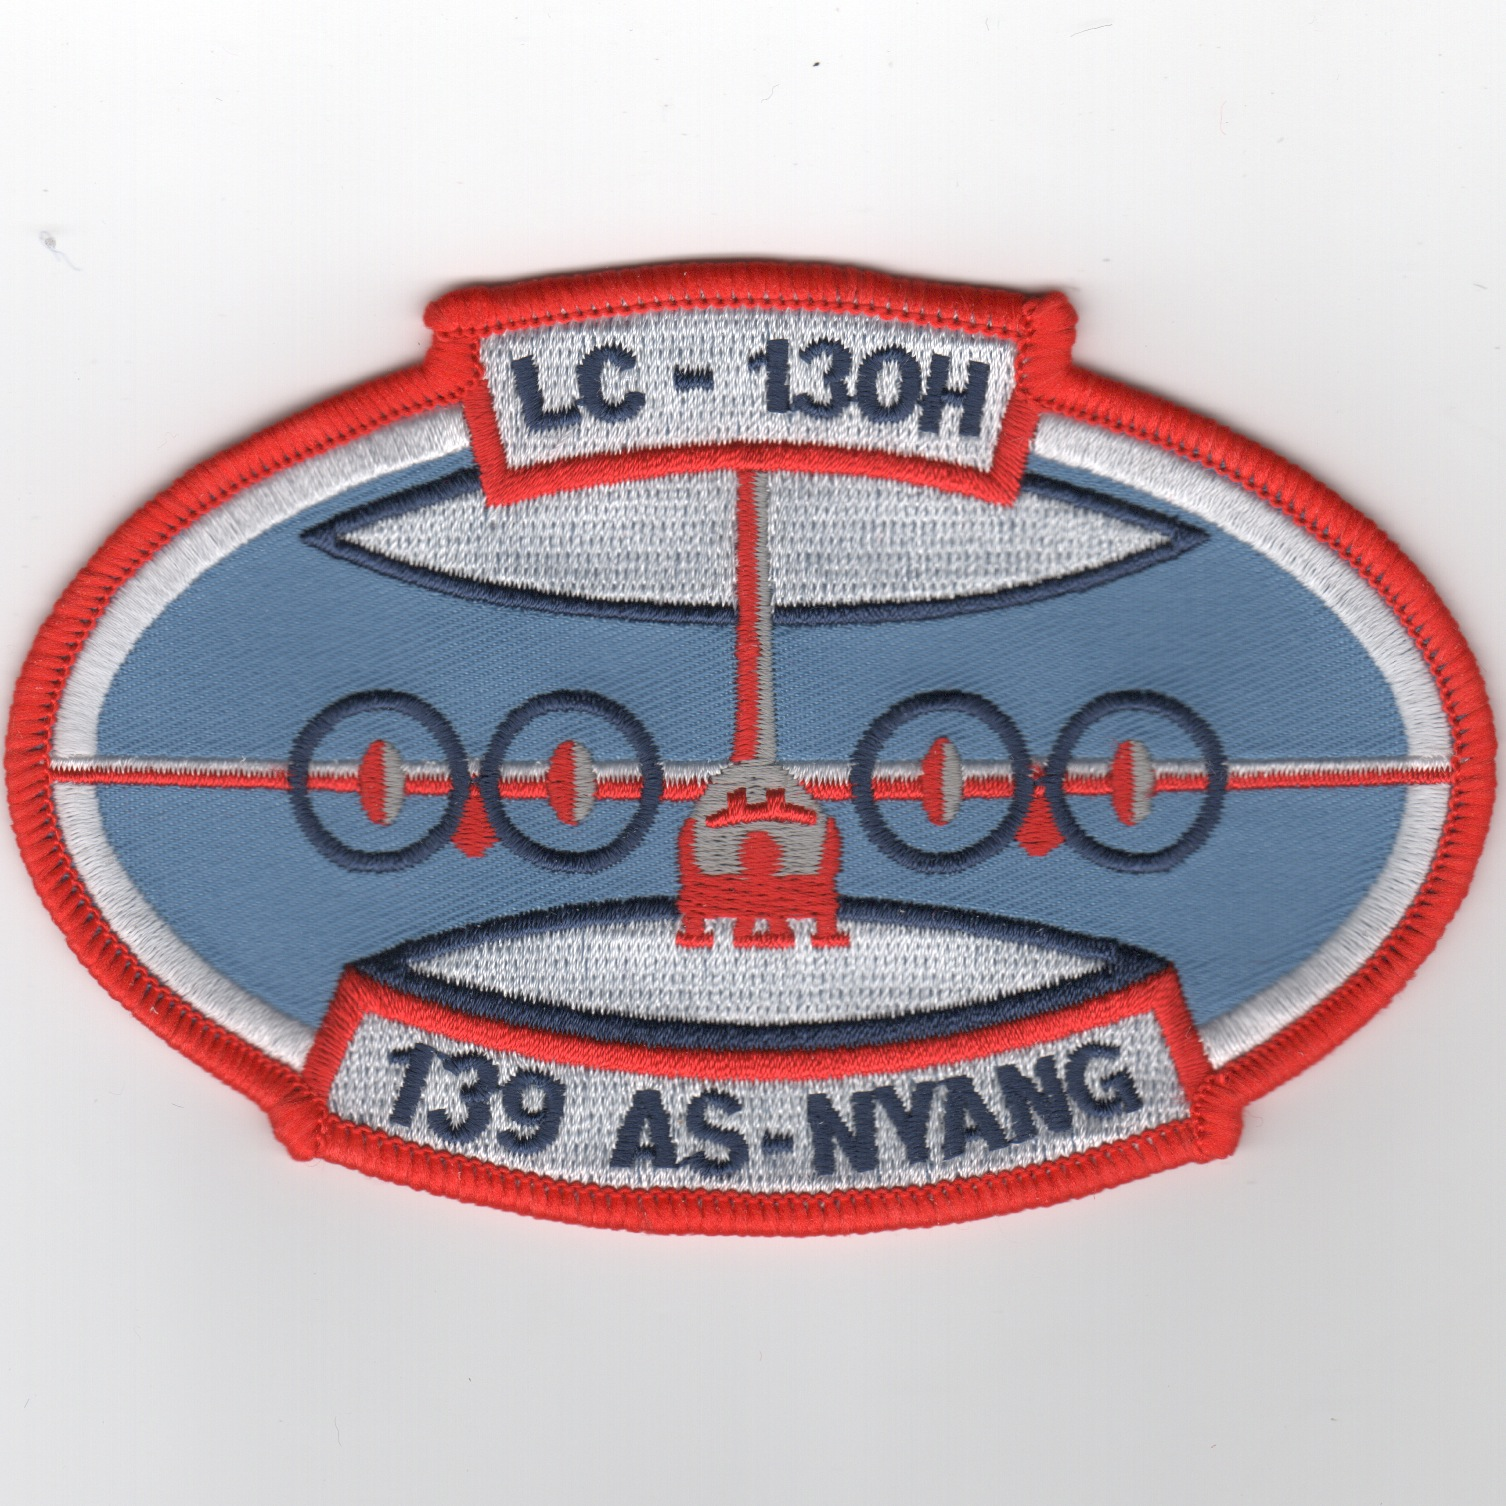 139th ALS/NYANG - Oval Patch (Lt. Blue)